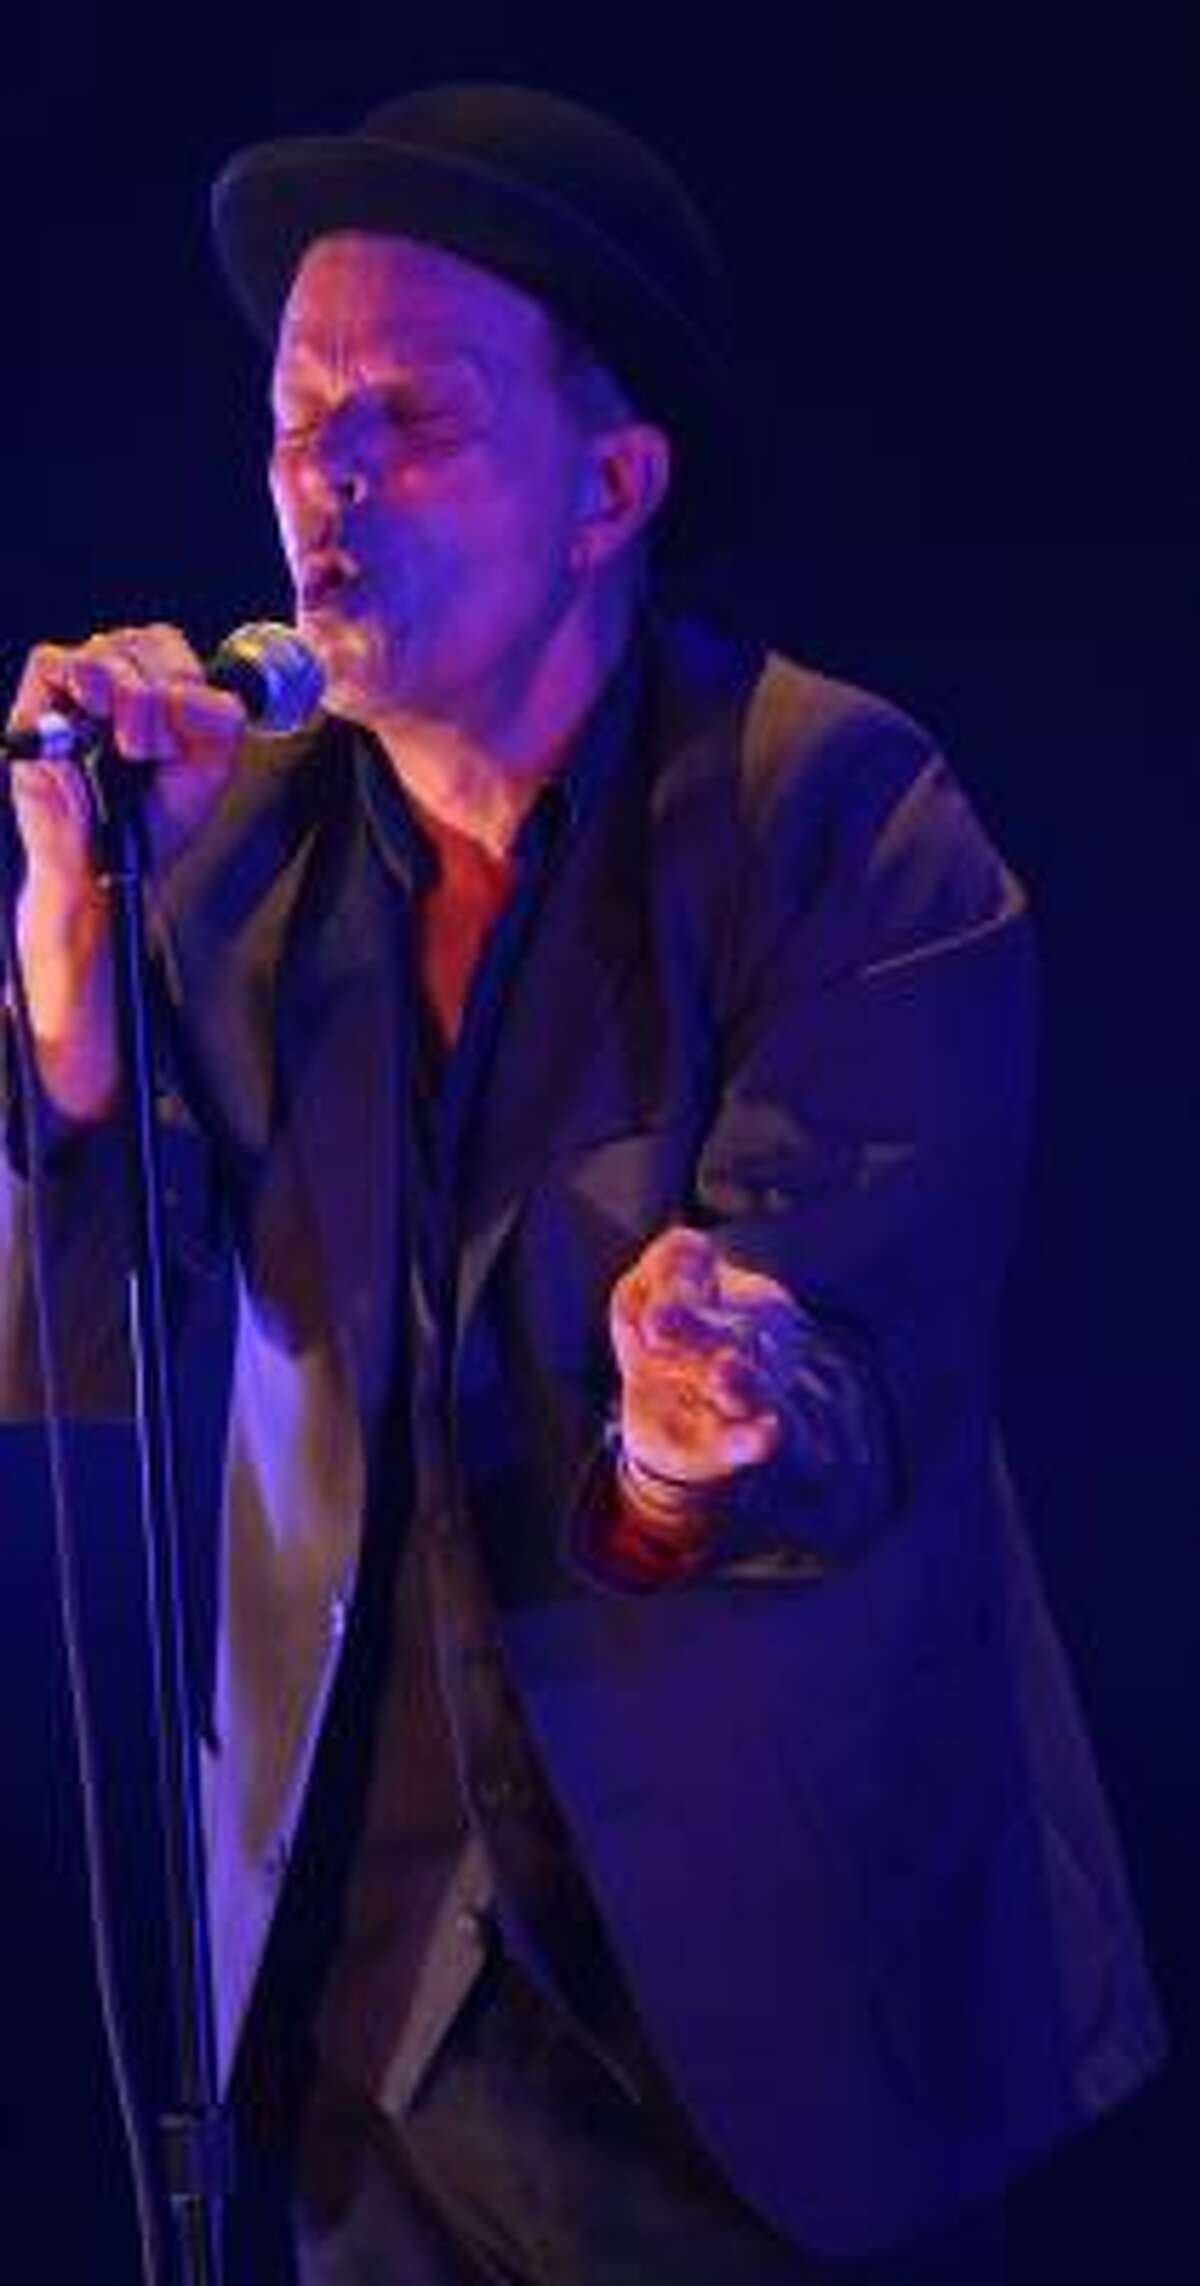 After 30 years of not performing in Houston, Tom Waits' Sunday concert was worth the wait.